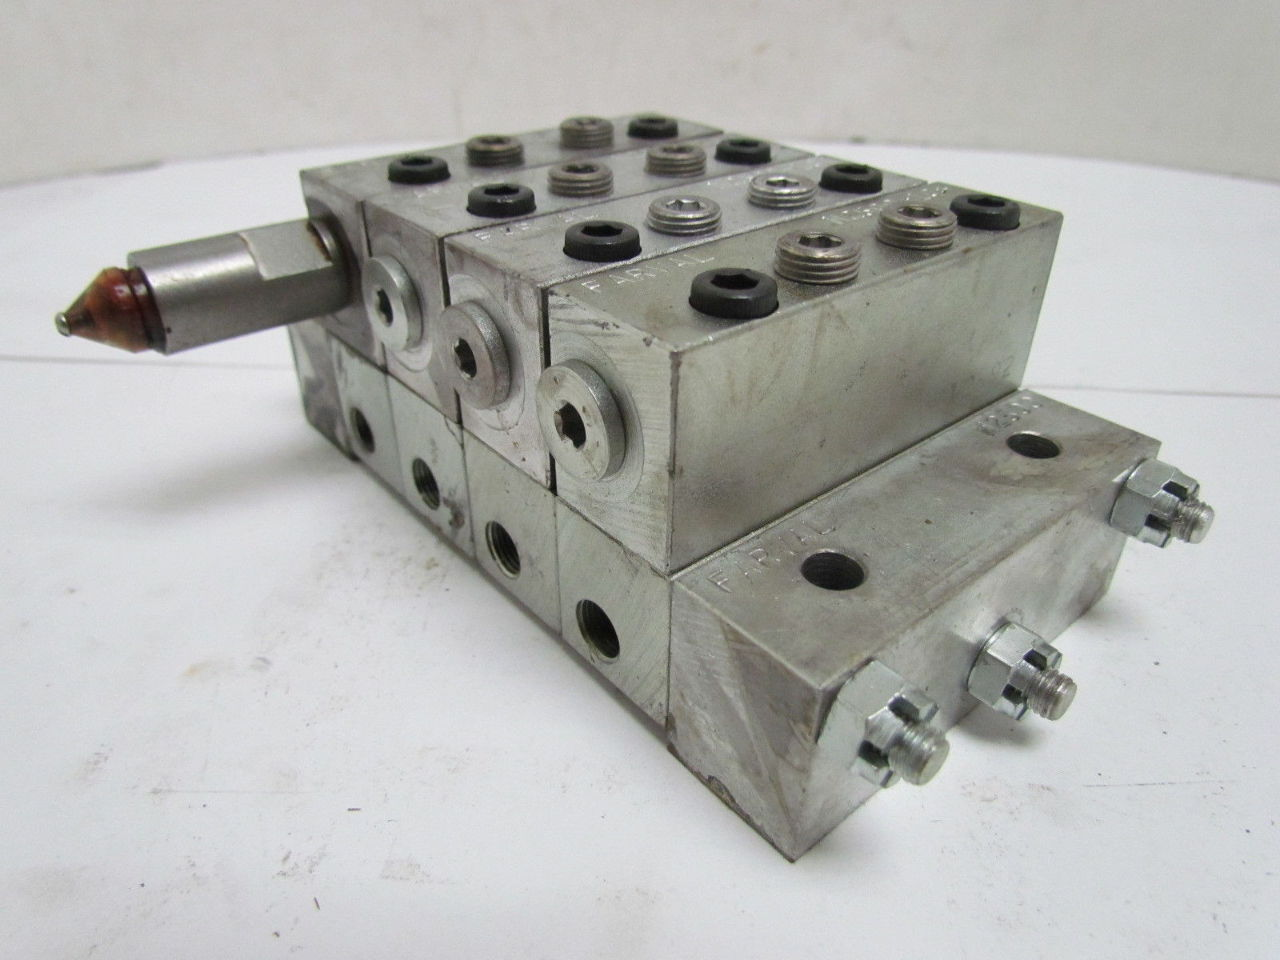 farval m2500 4 section divider valve manifold assembly